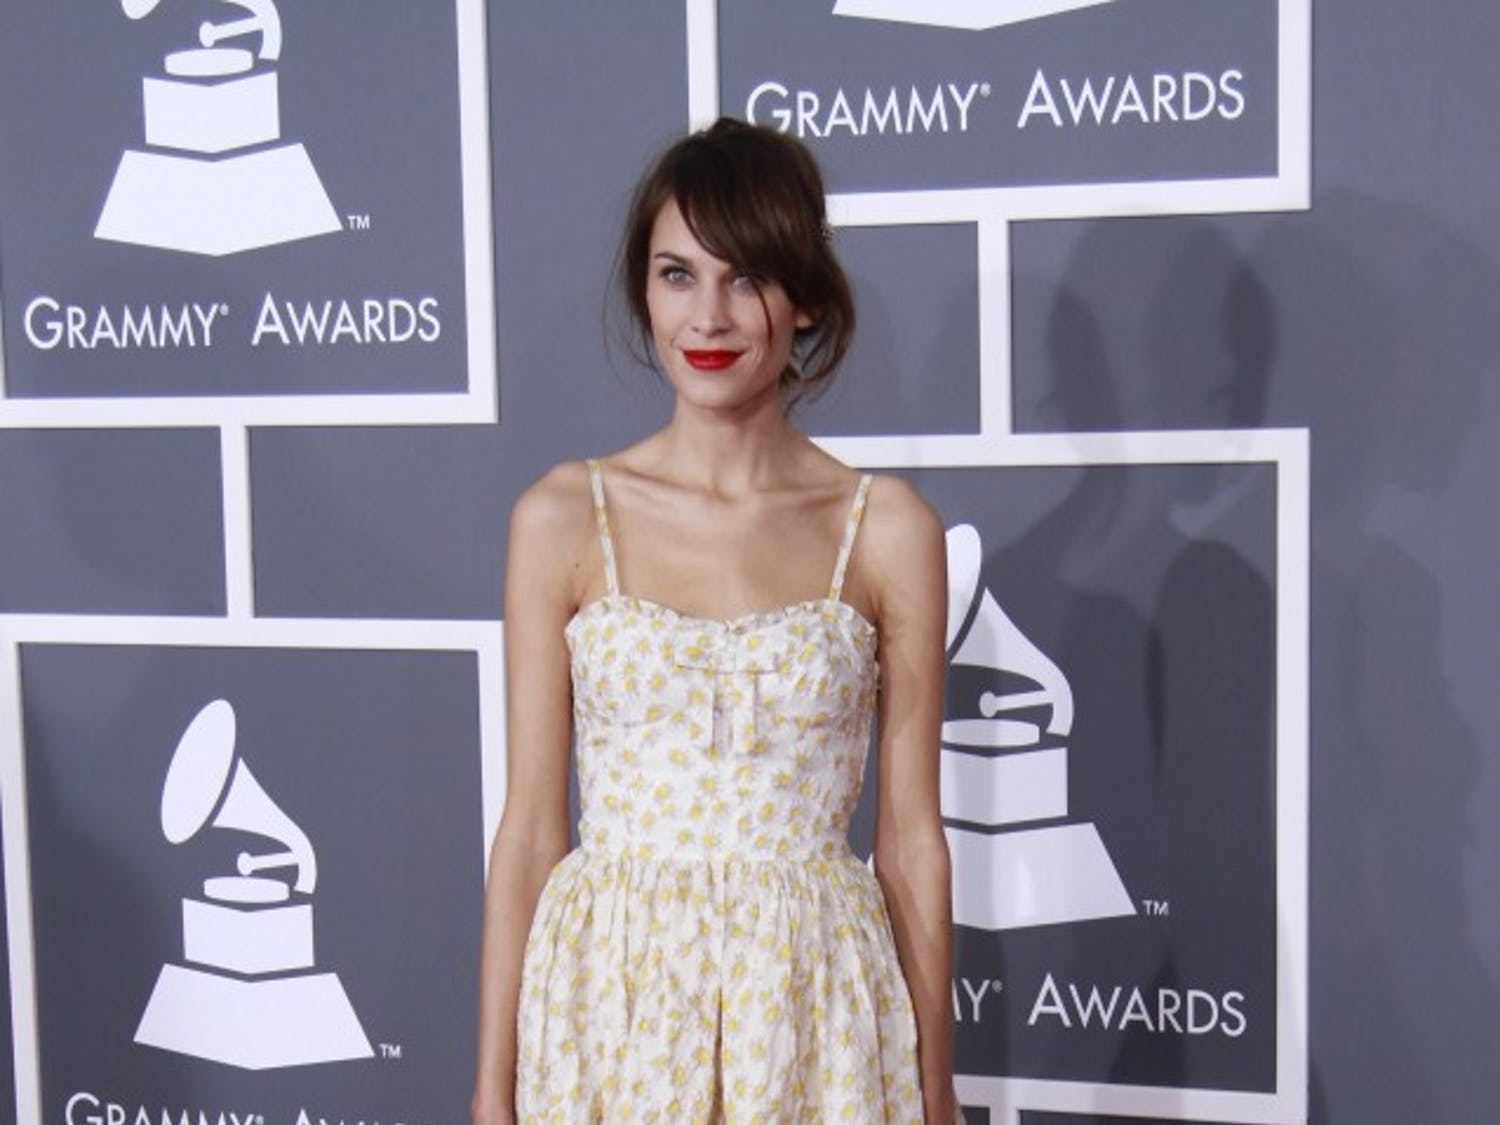 Alexa Chung arrives for the 55th Annual Grammy Awards at Staples Center in Los Angeles, California, on Sunday, February 10, 2013. (Kirk McKoy/Los Angeles Times/MCT)